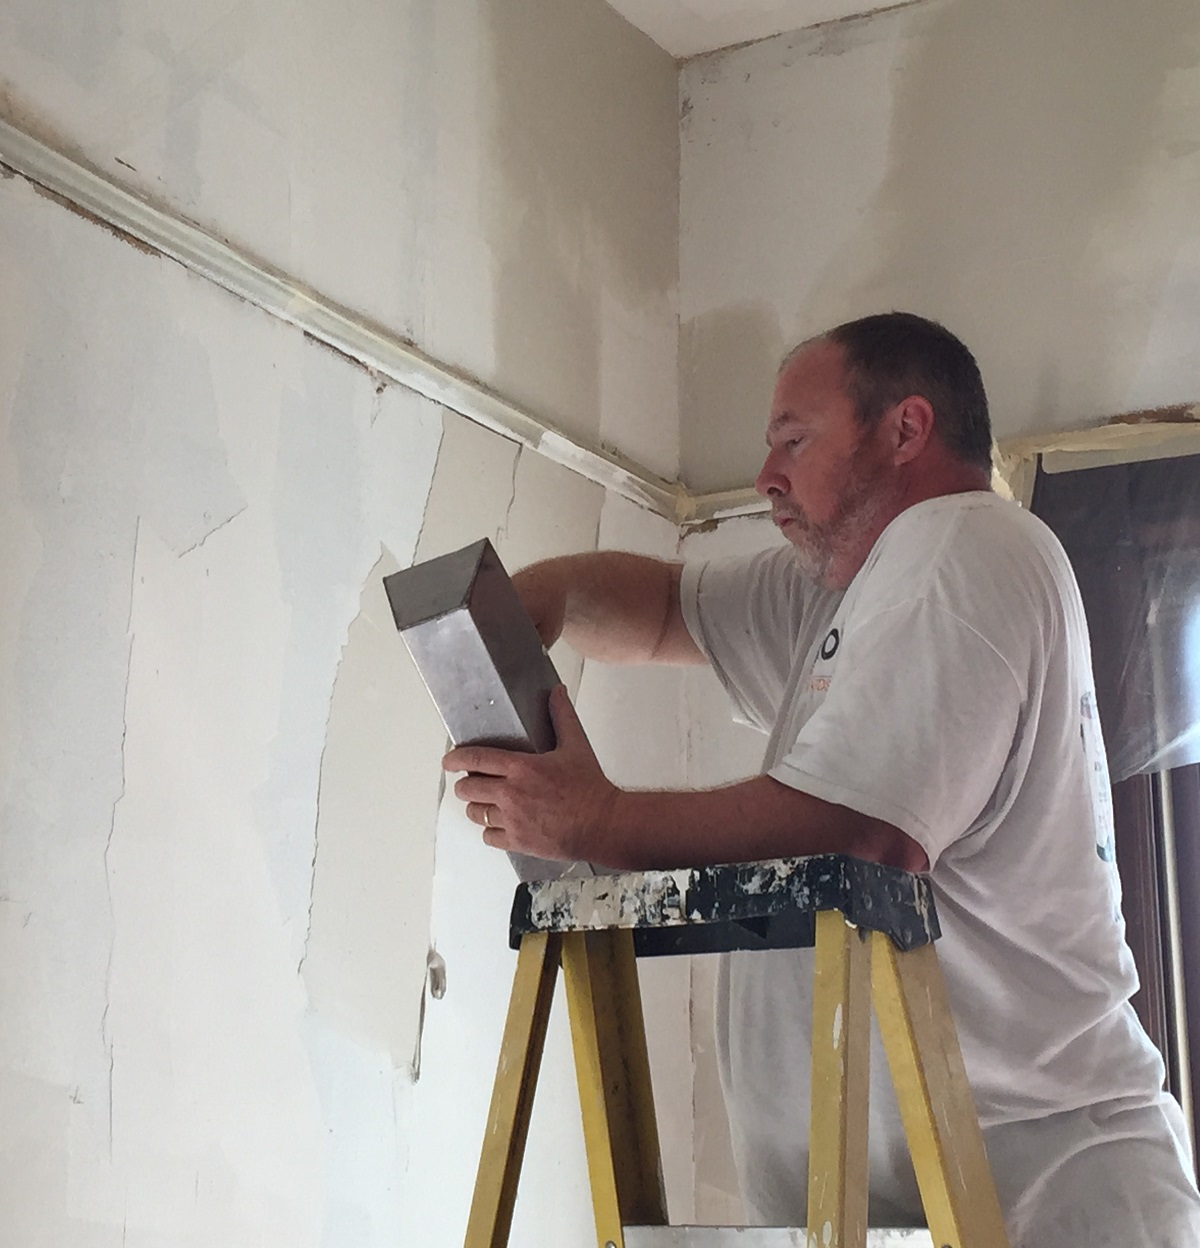 Sheetrock Repair Montgomery, Alabama